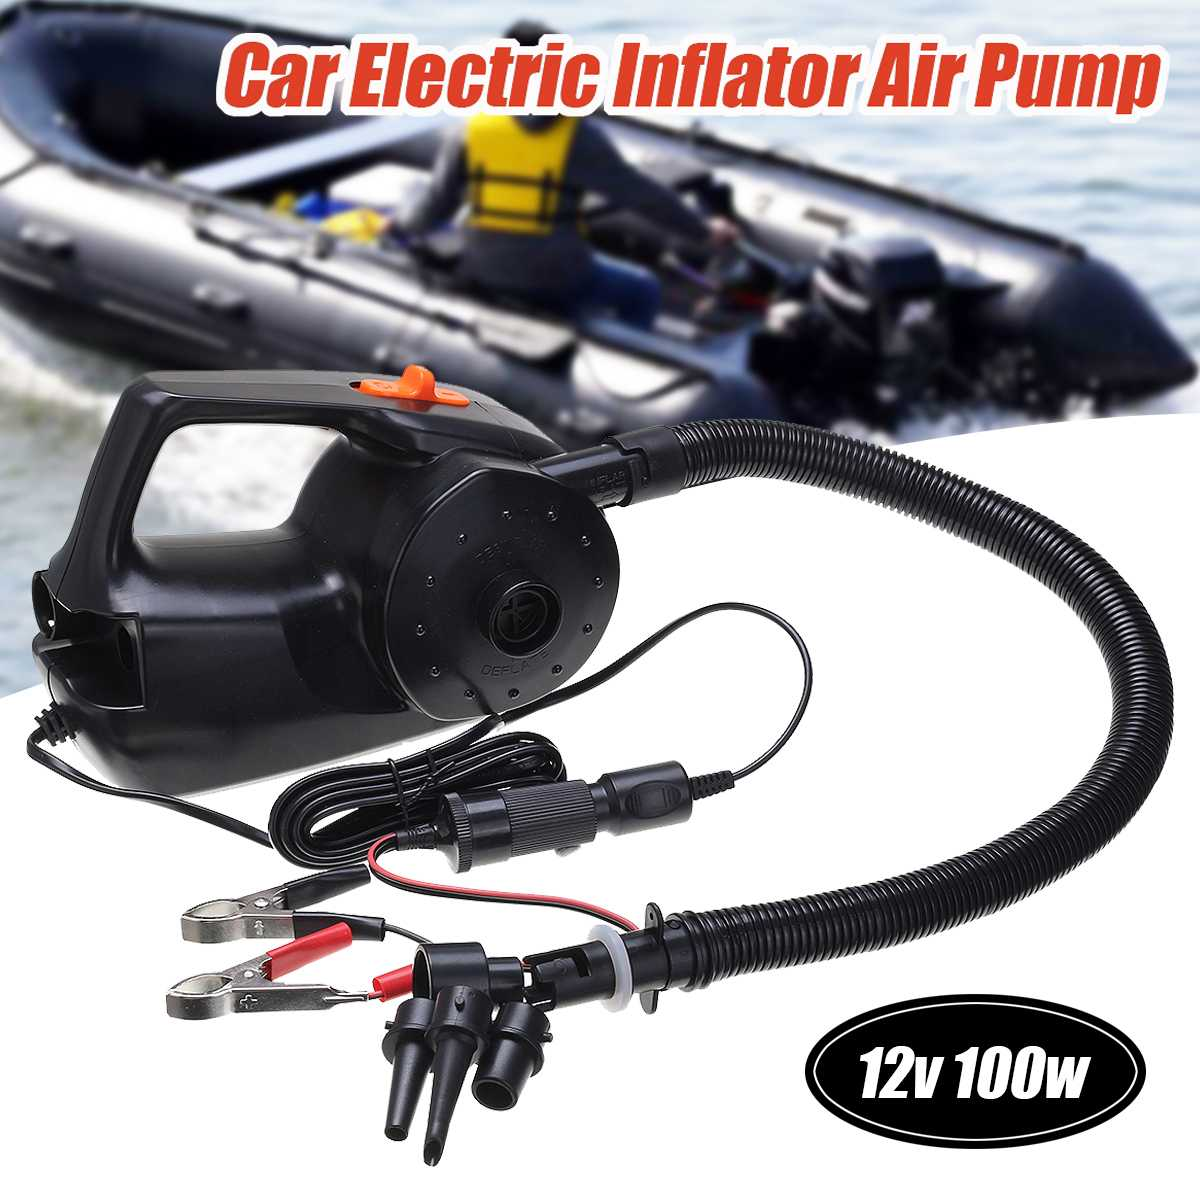 Car-Rechargable-Pump Blower Boat Kayak Electric Portable Auto 100W 12V for Swimming-Pool title=